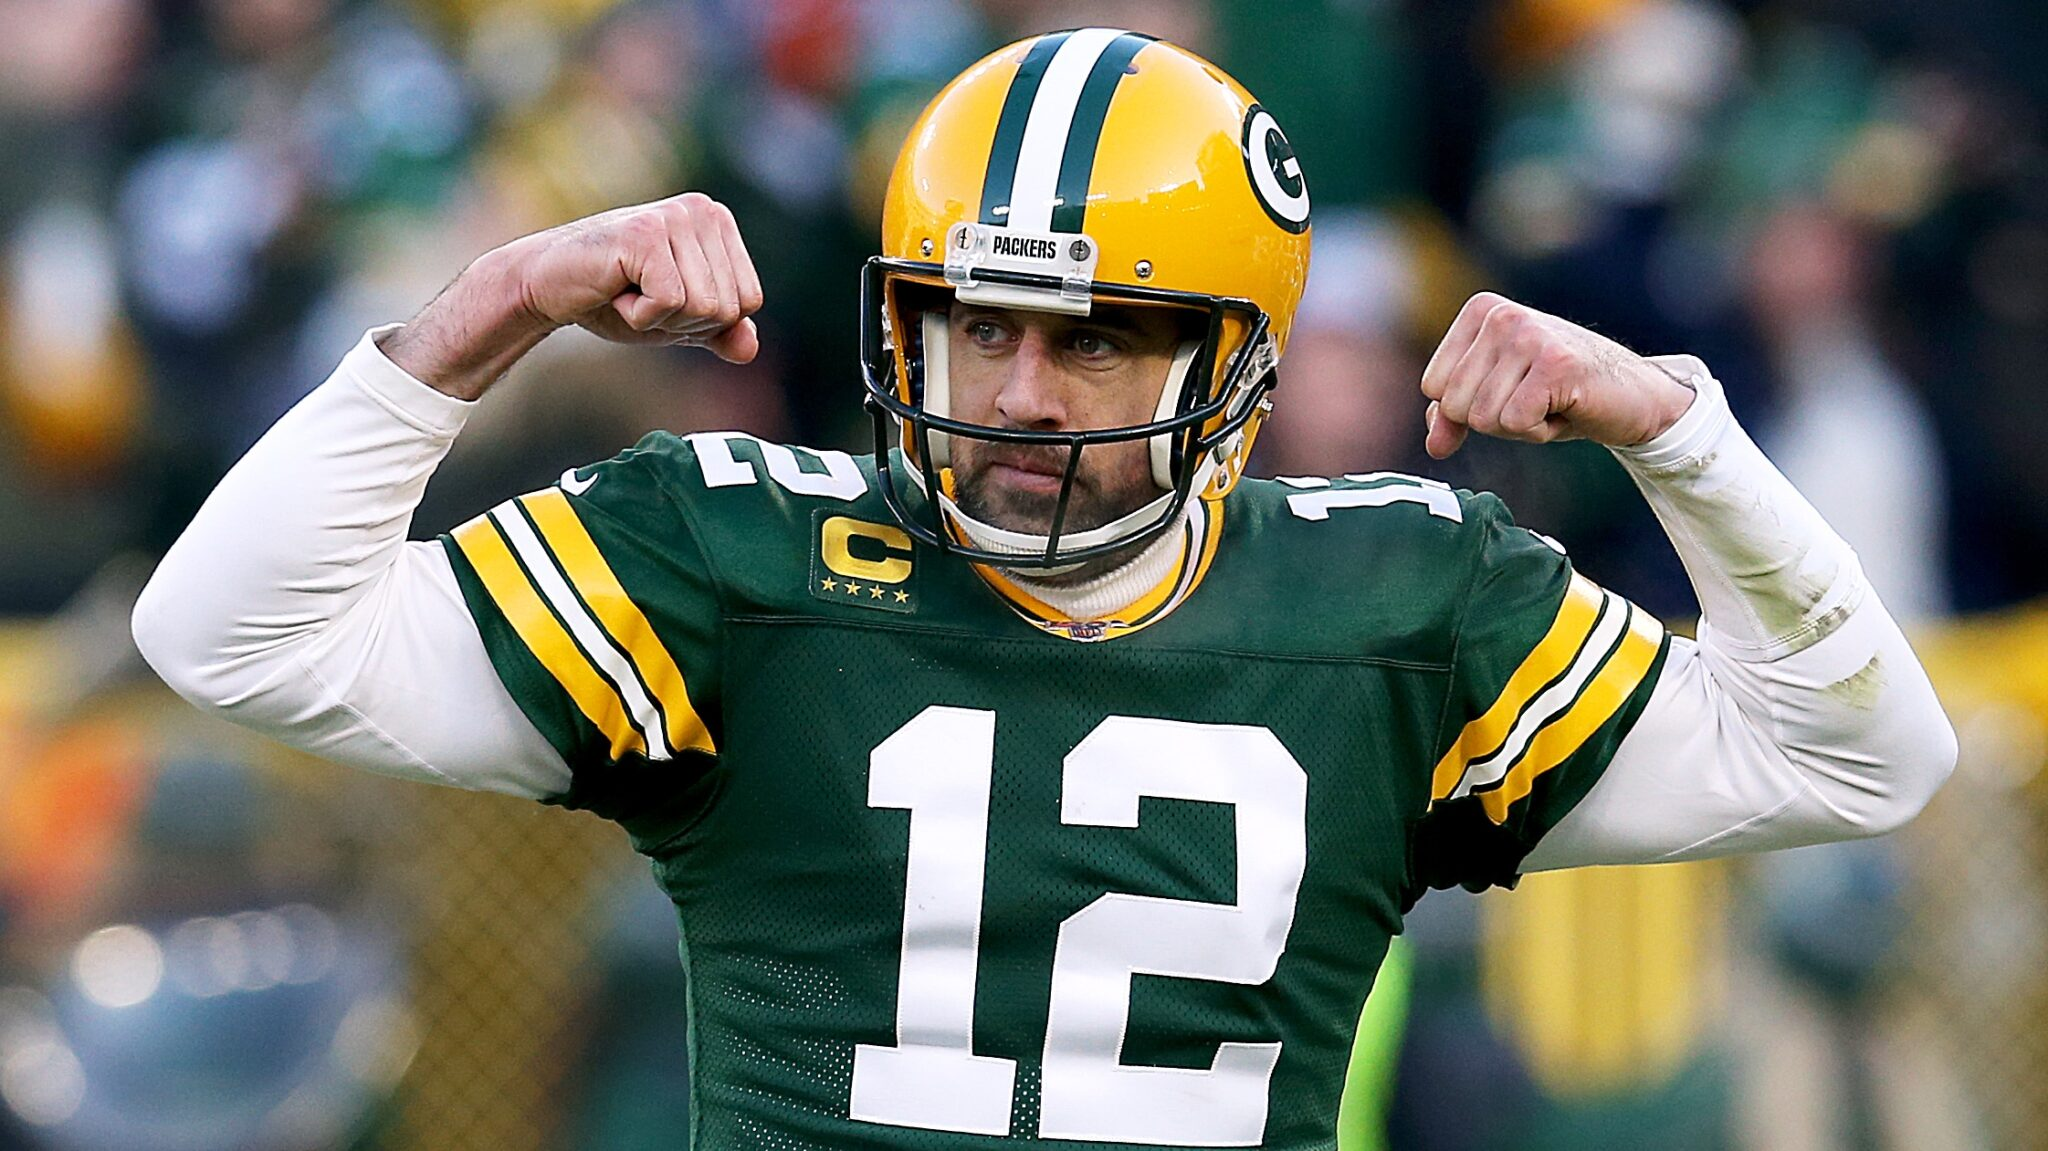 Colts - Packers